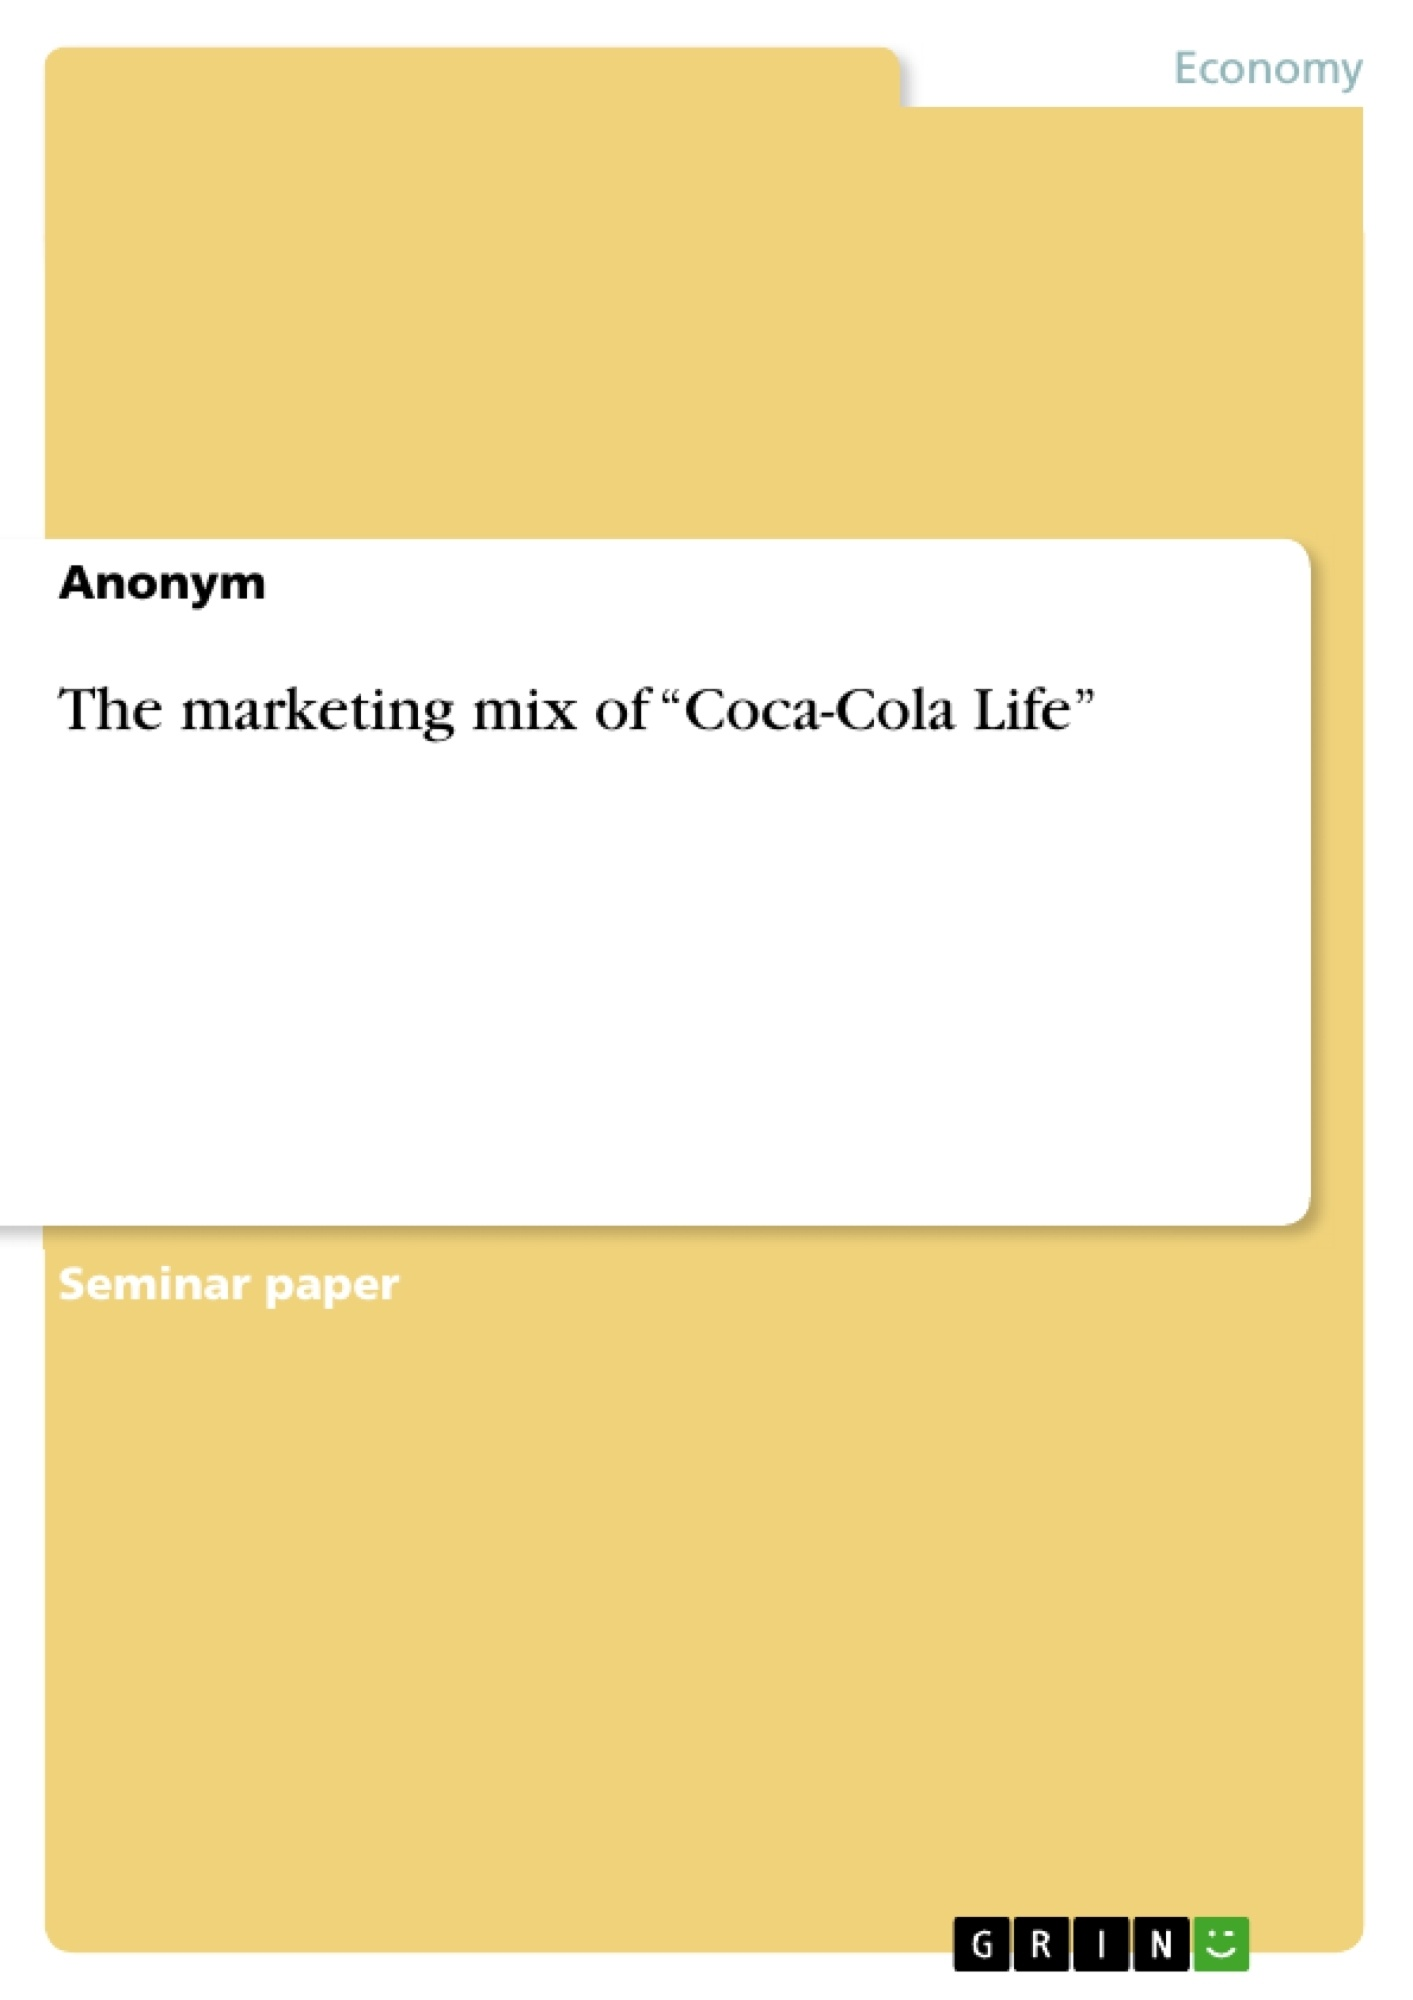 thesis marketing communication mix